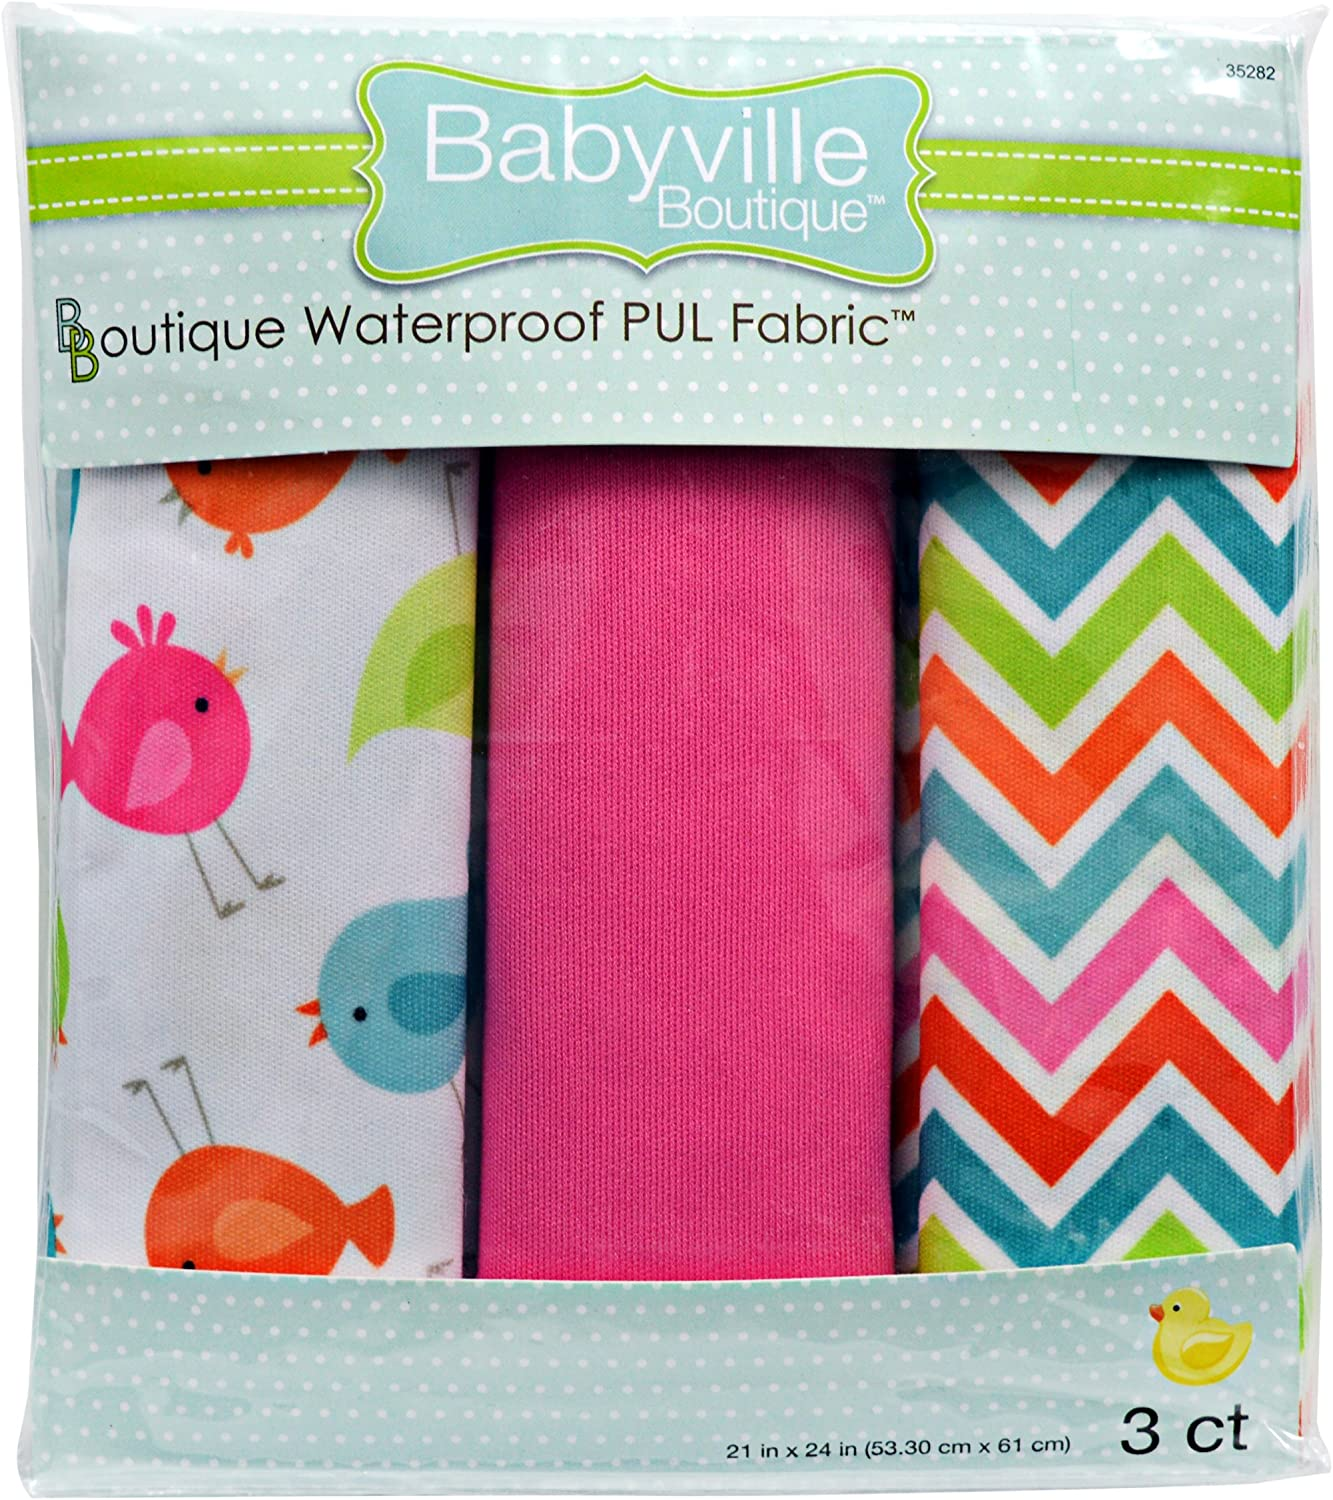 Babyville Boutique Waterproof Breathable PUL Fabric Solid Pink